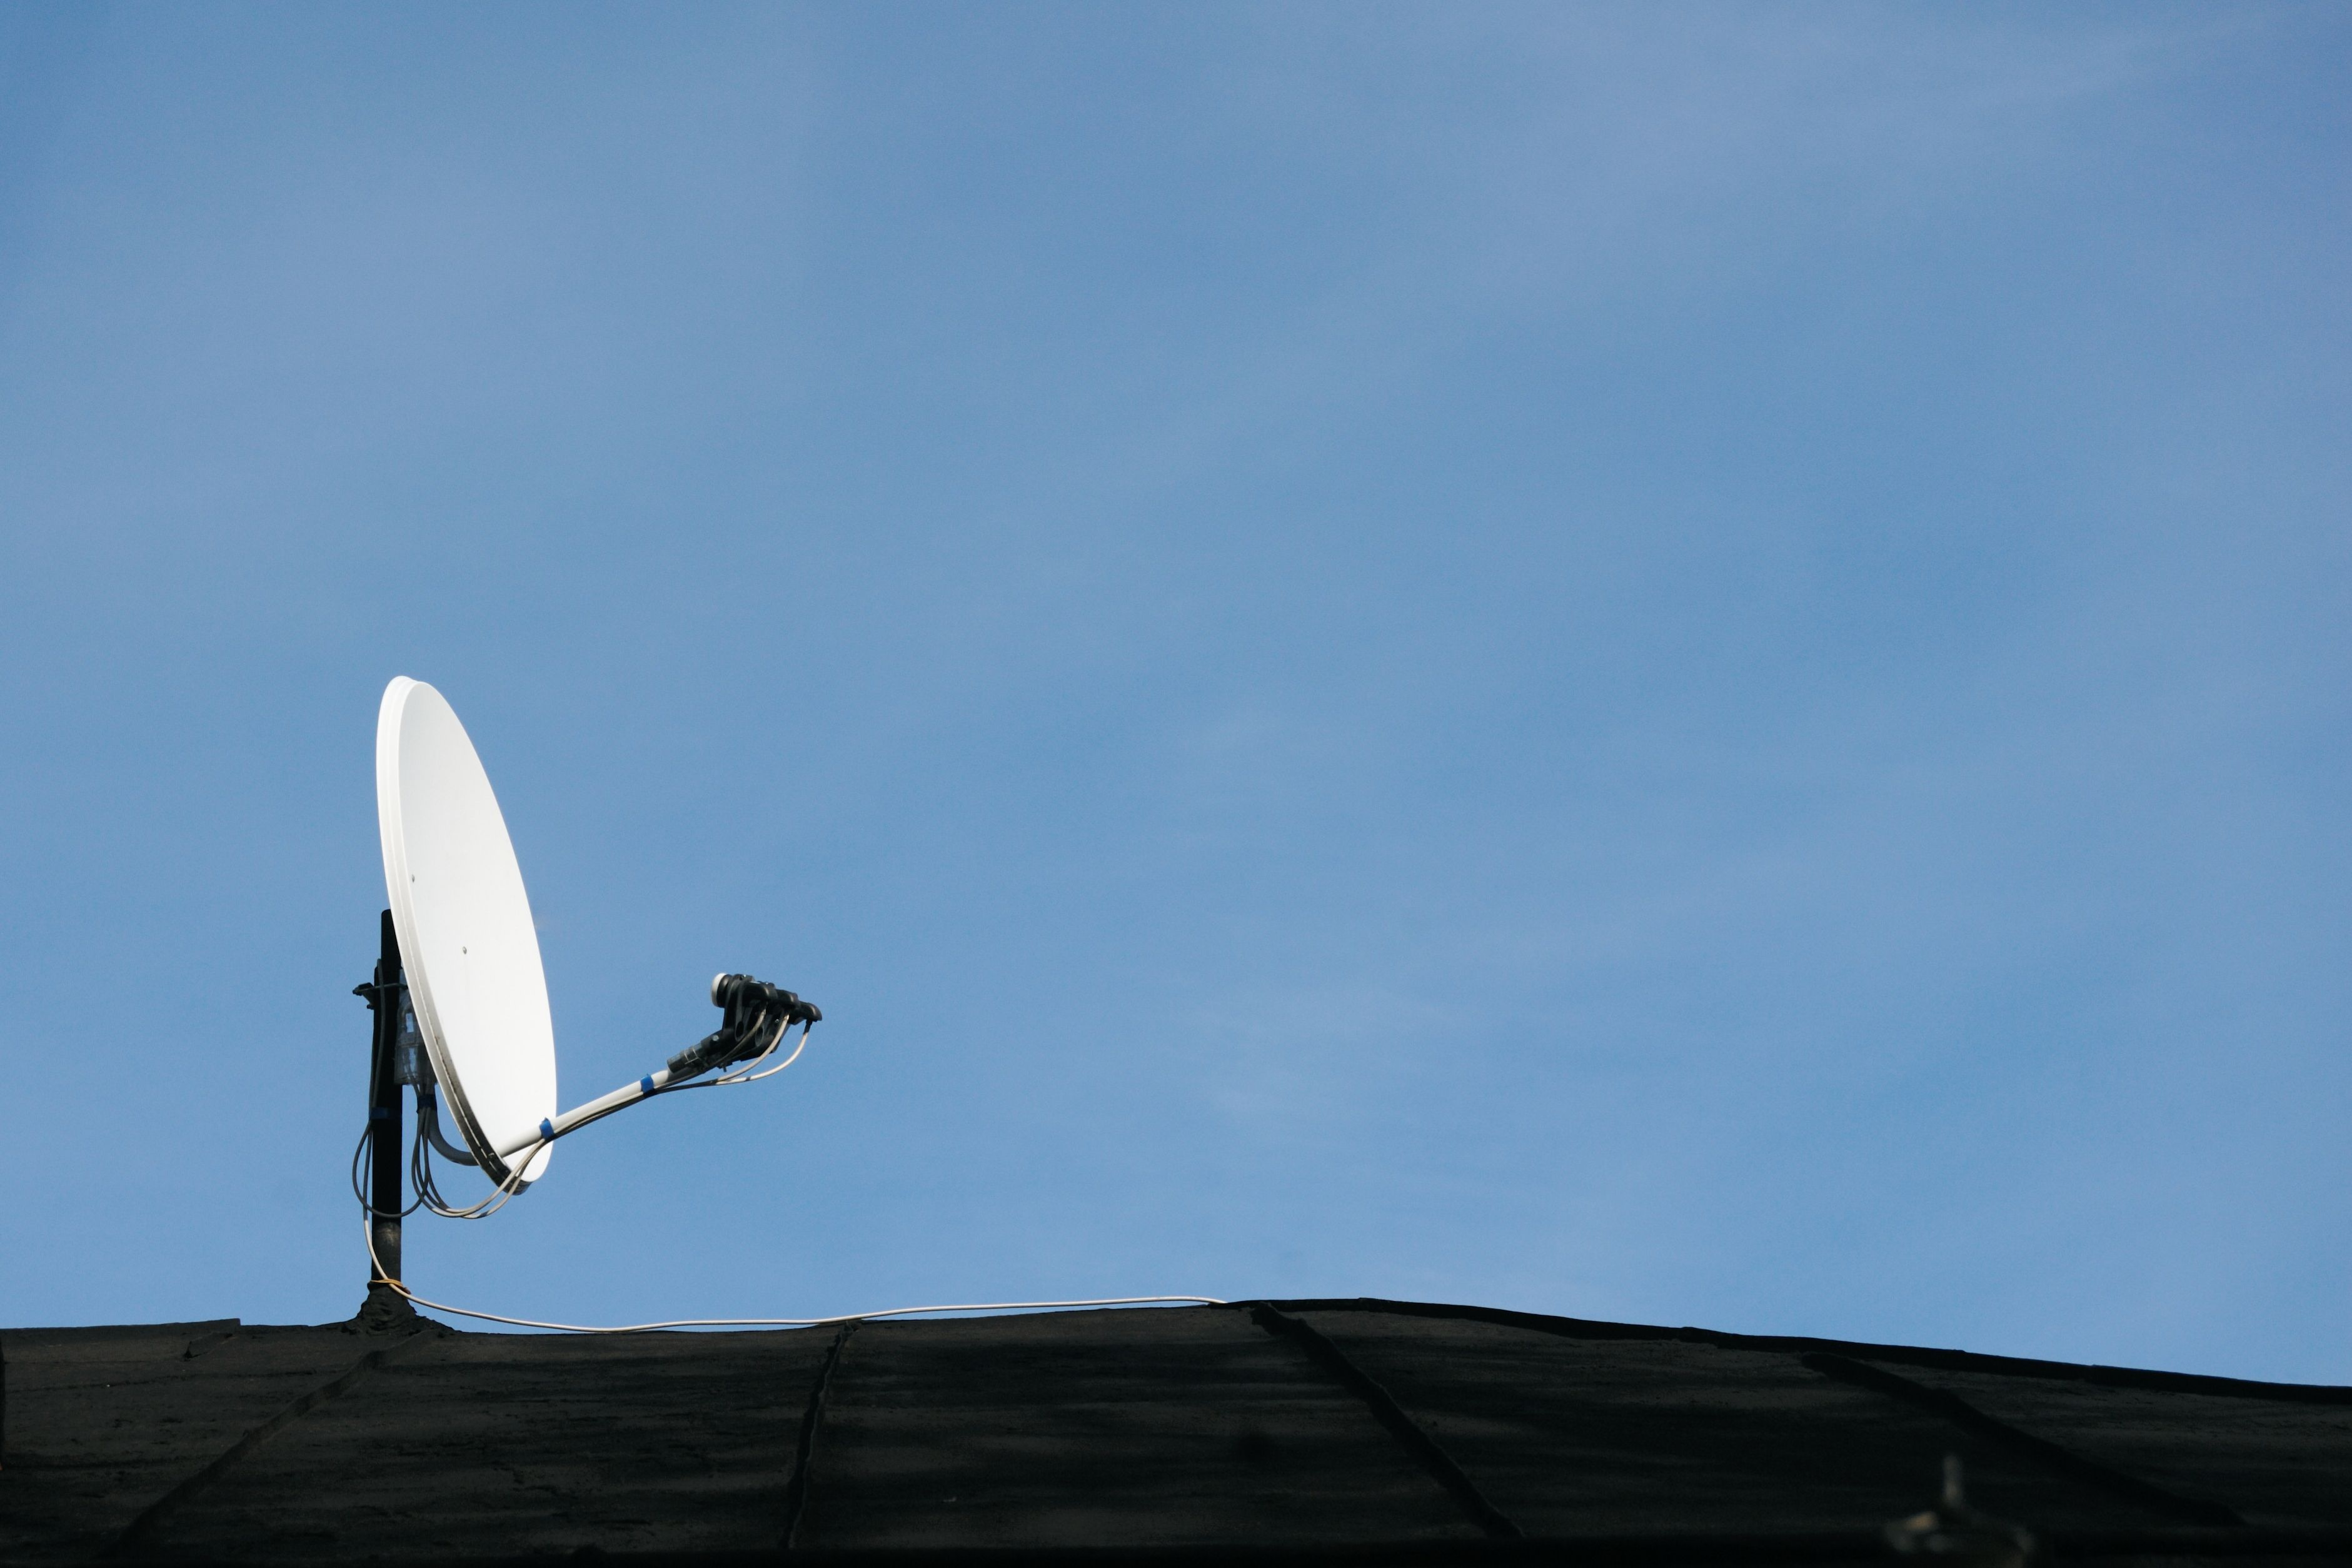 How to Clean the Satellite Dish to Improve Reception